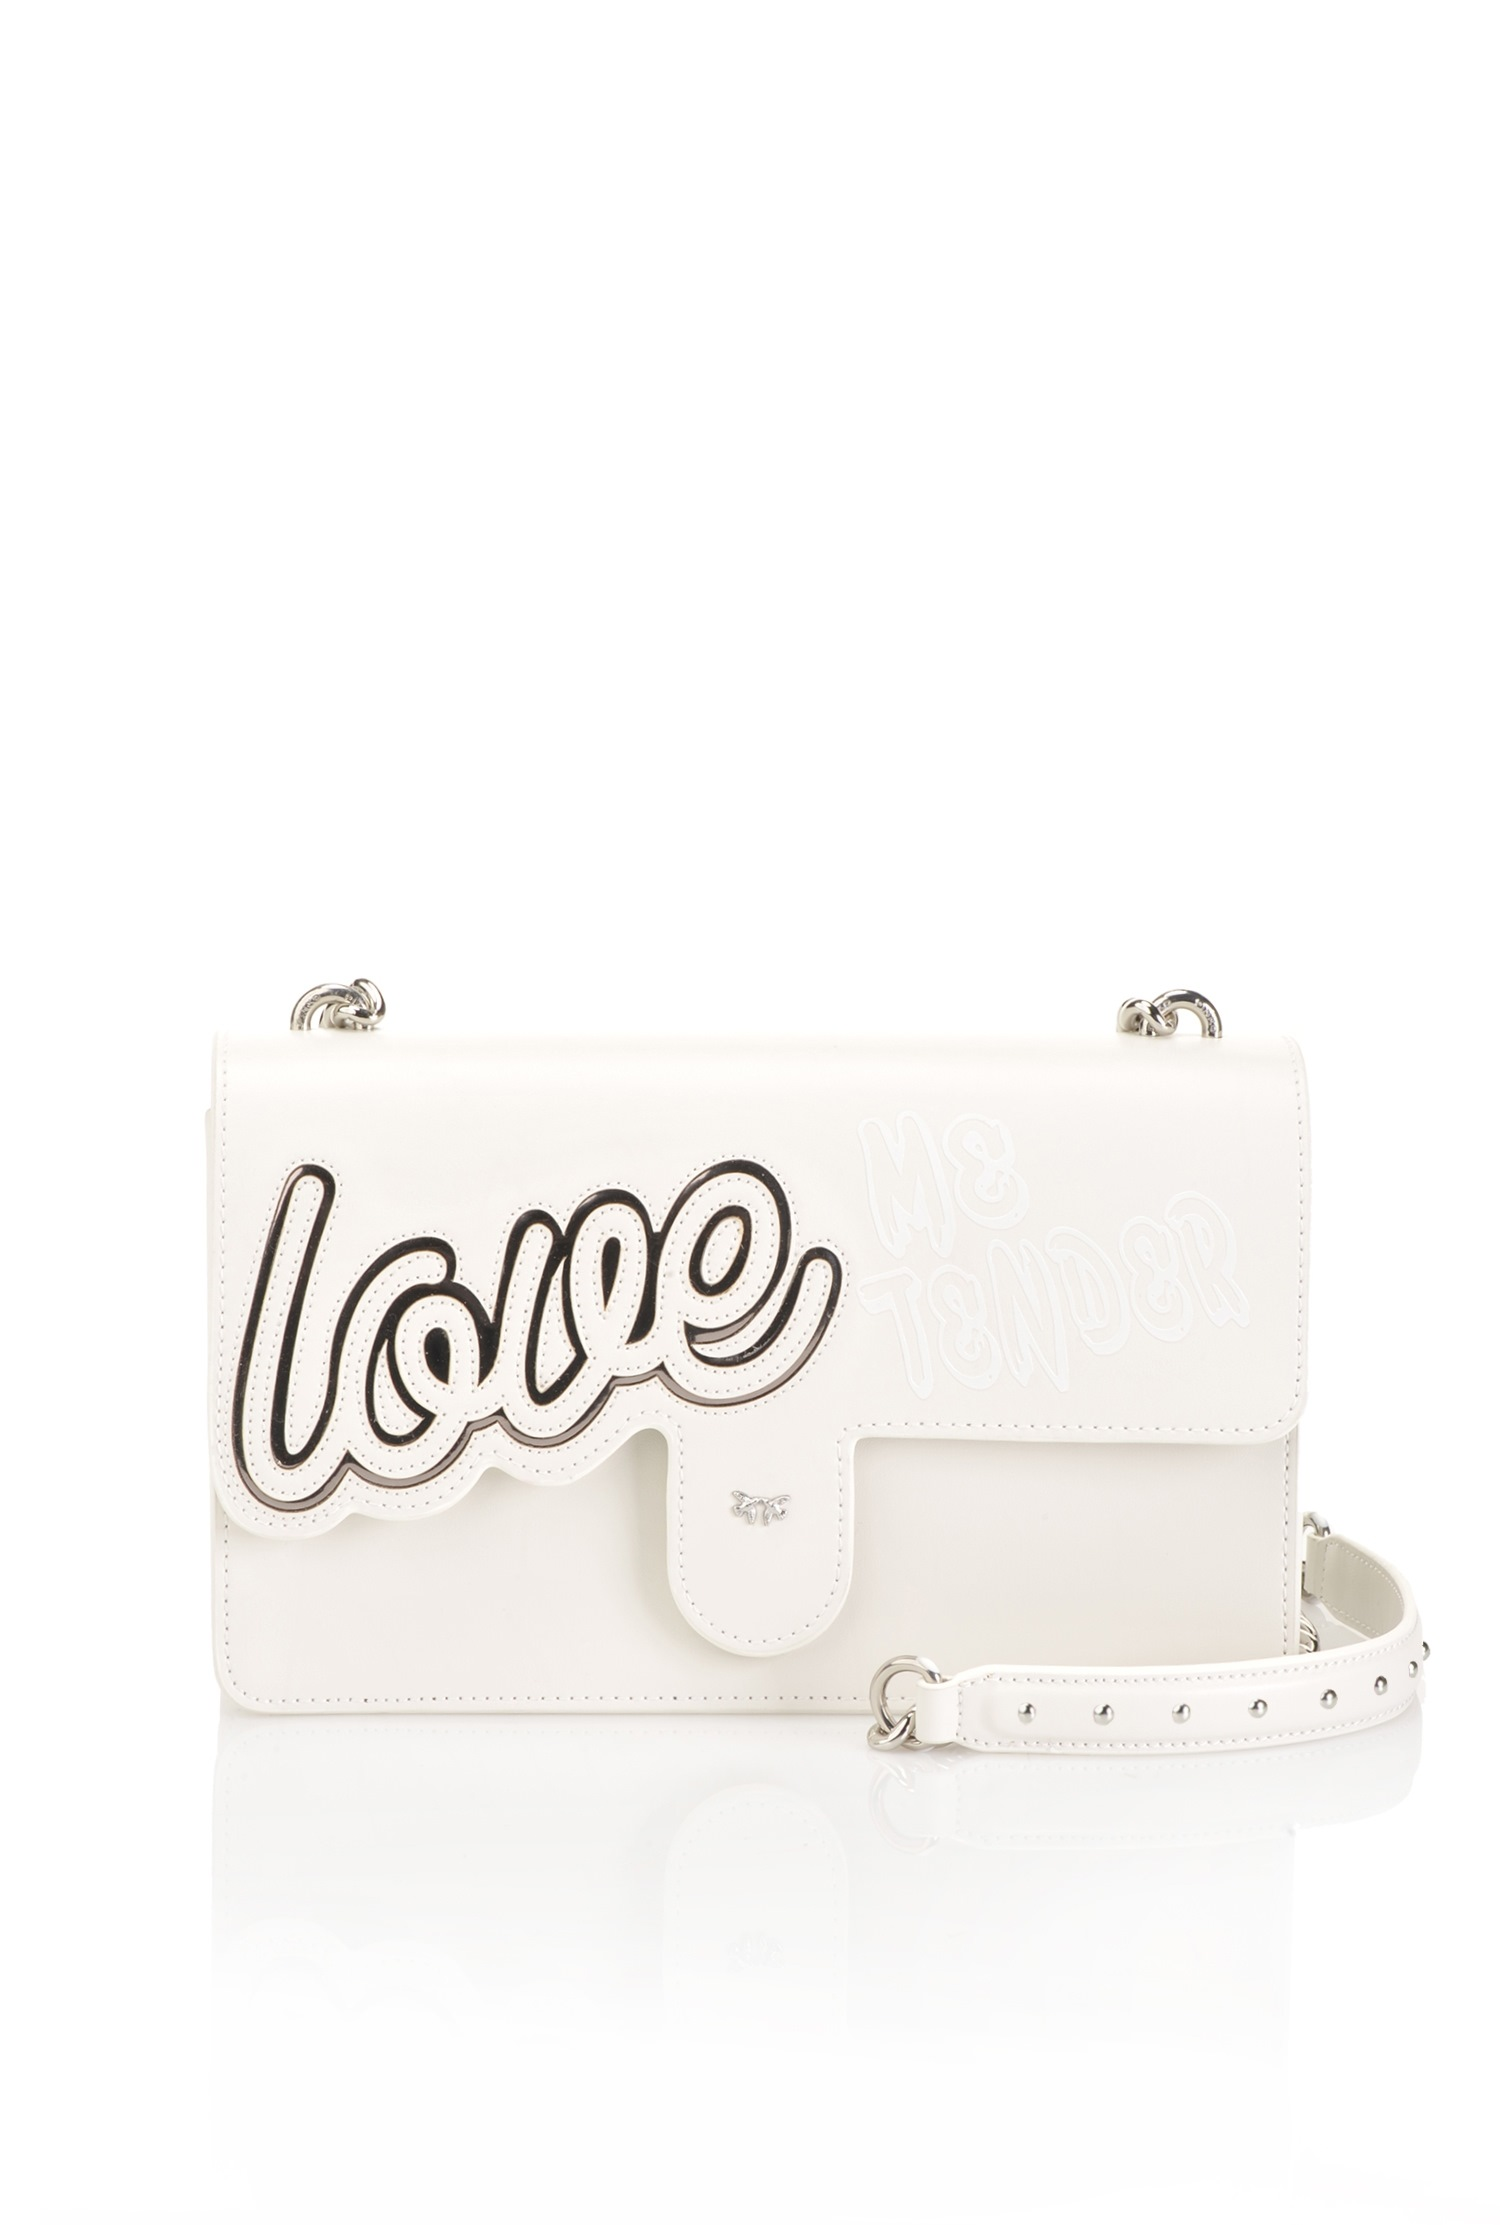 » Pinko Cuir Bag Love Incrustation « En Avec BxoredC